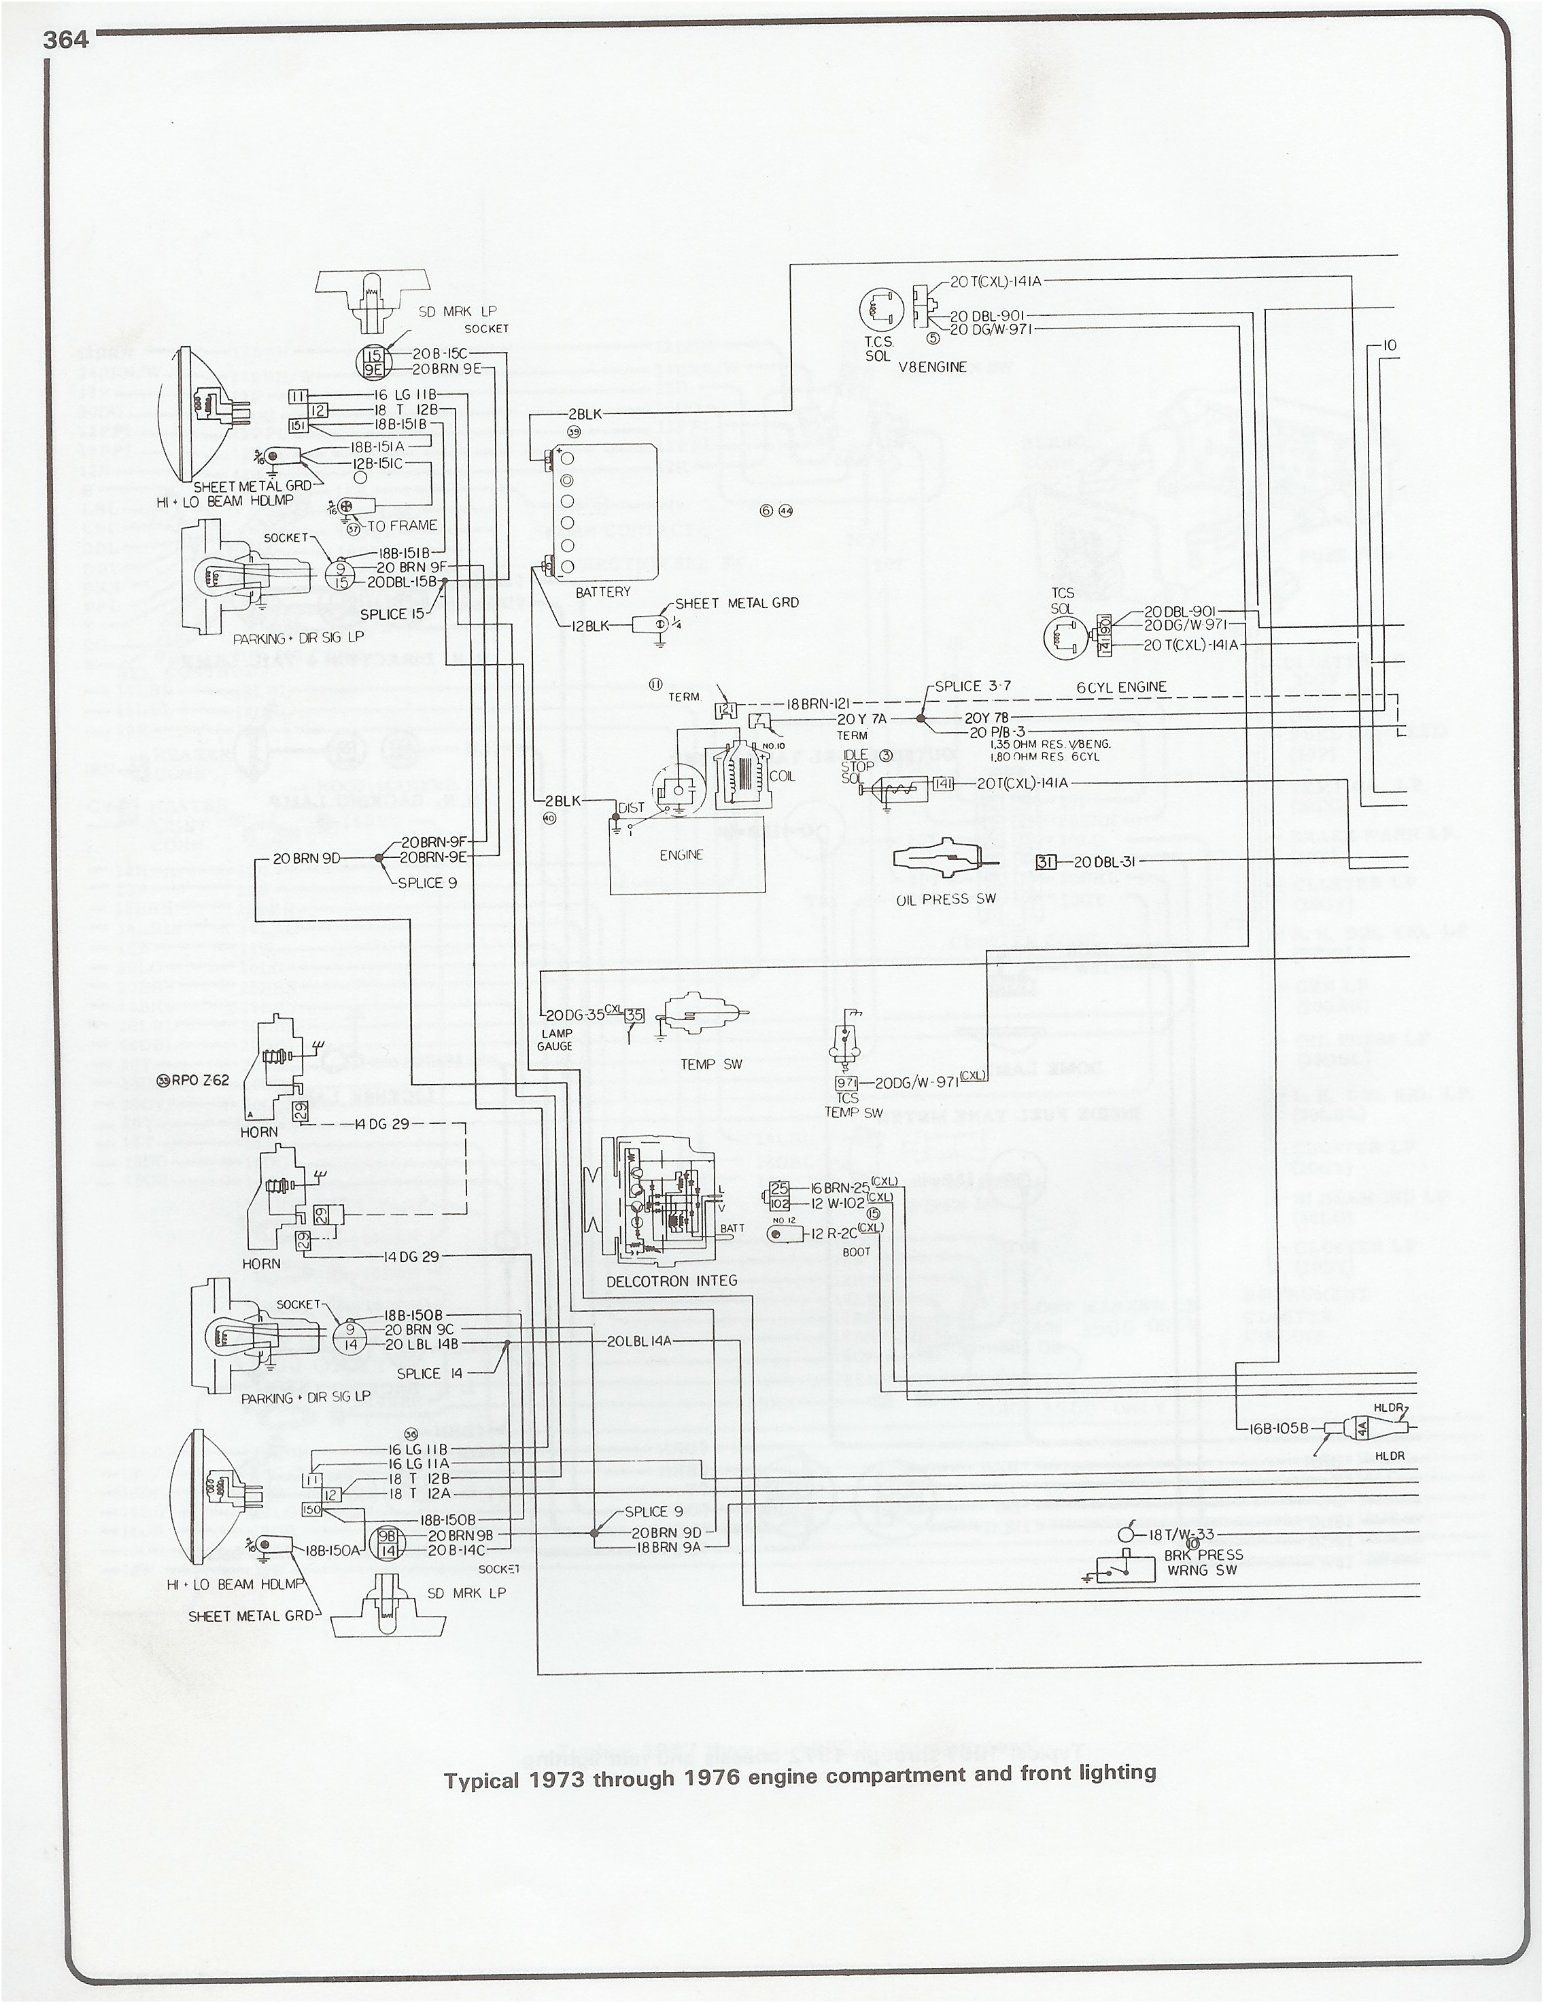 1976 Chevy Wiring Diagram Great Installation Of For 1967 Truck 1973 Pickup Rh Pinterest Com Diagrams Free